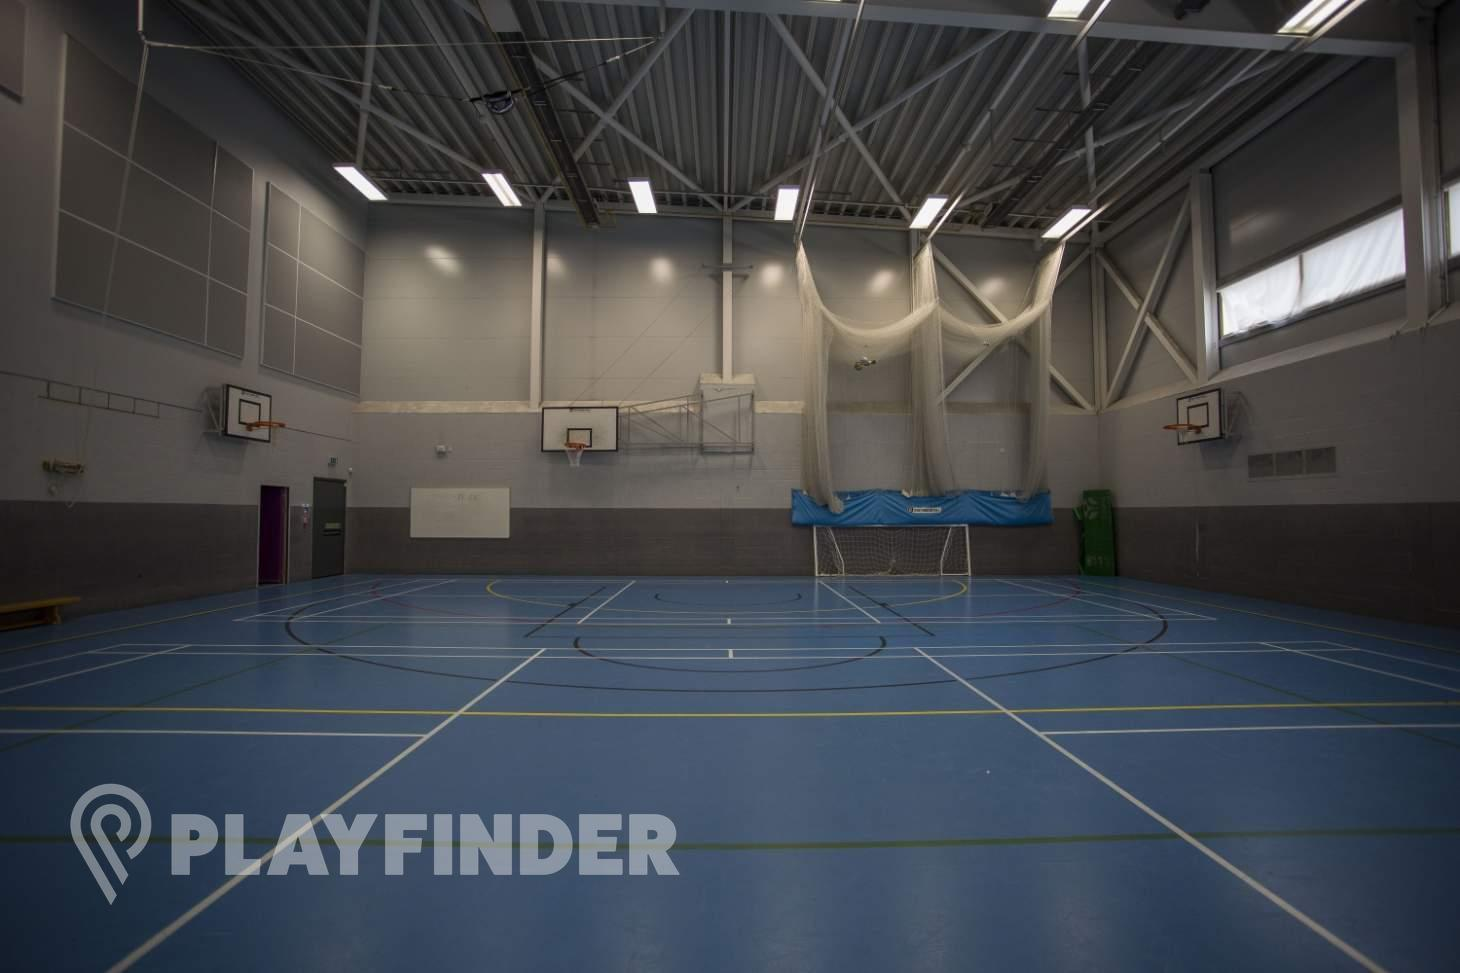 Ark Academy Wembley Court | Sports hall volleyball court